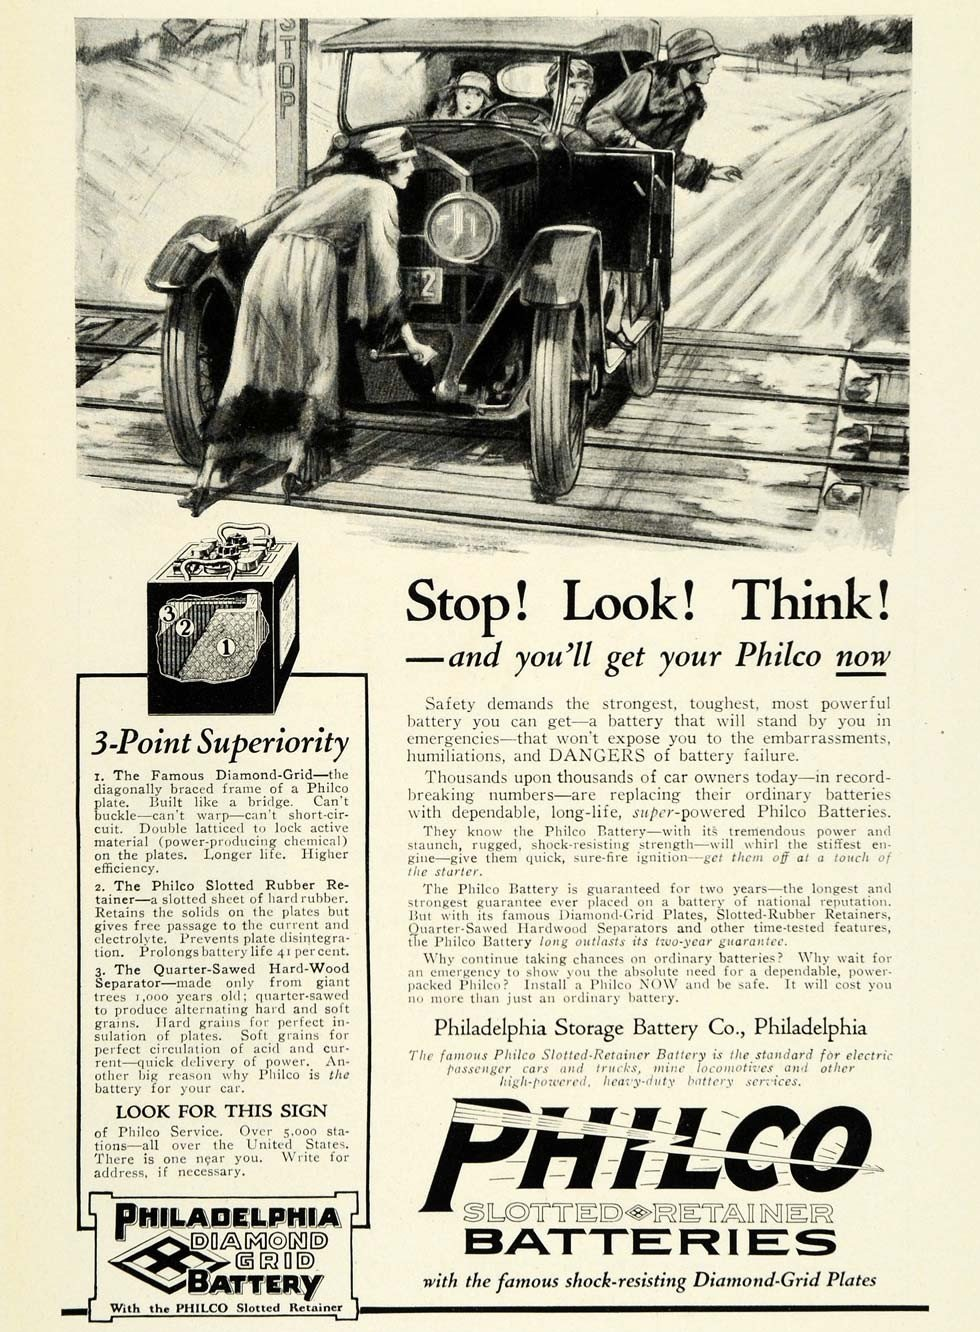 1923 Philco Batteries